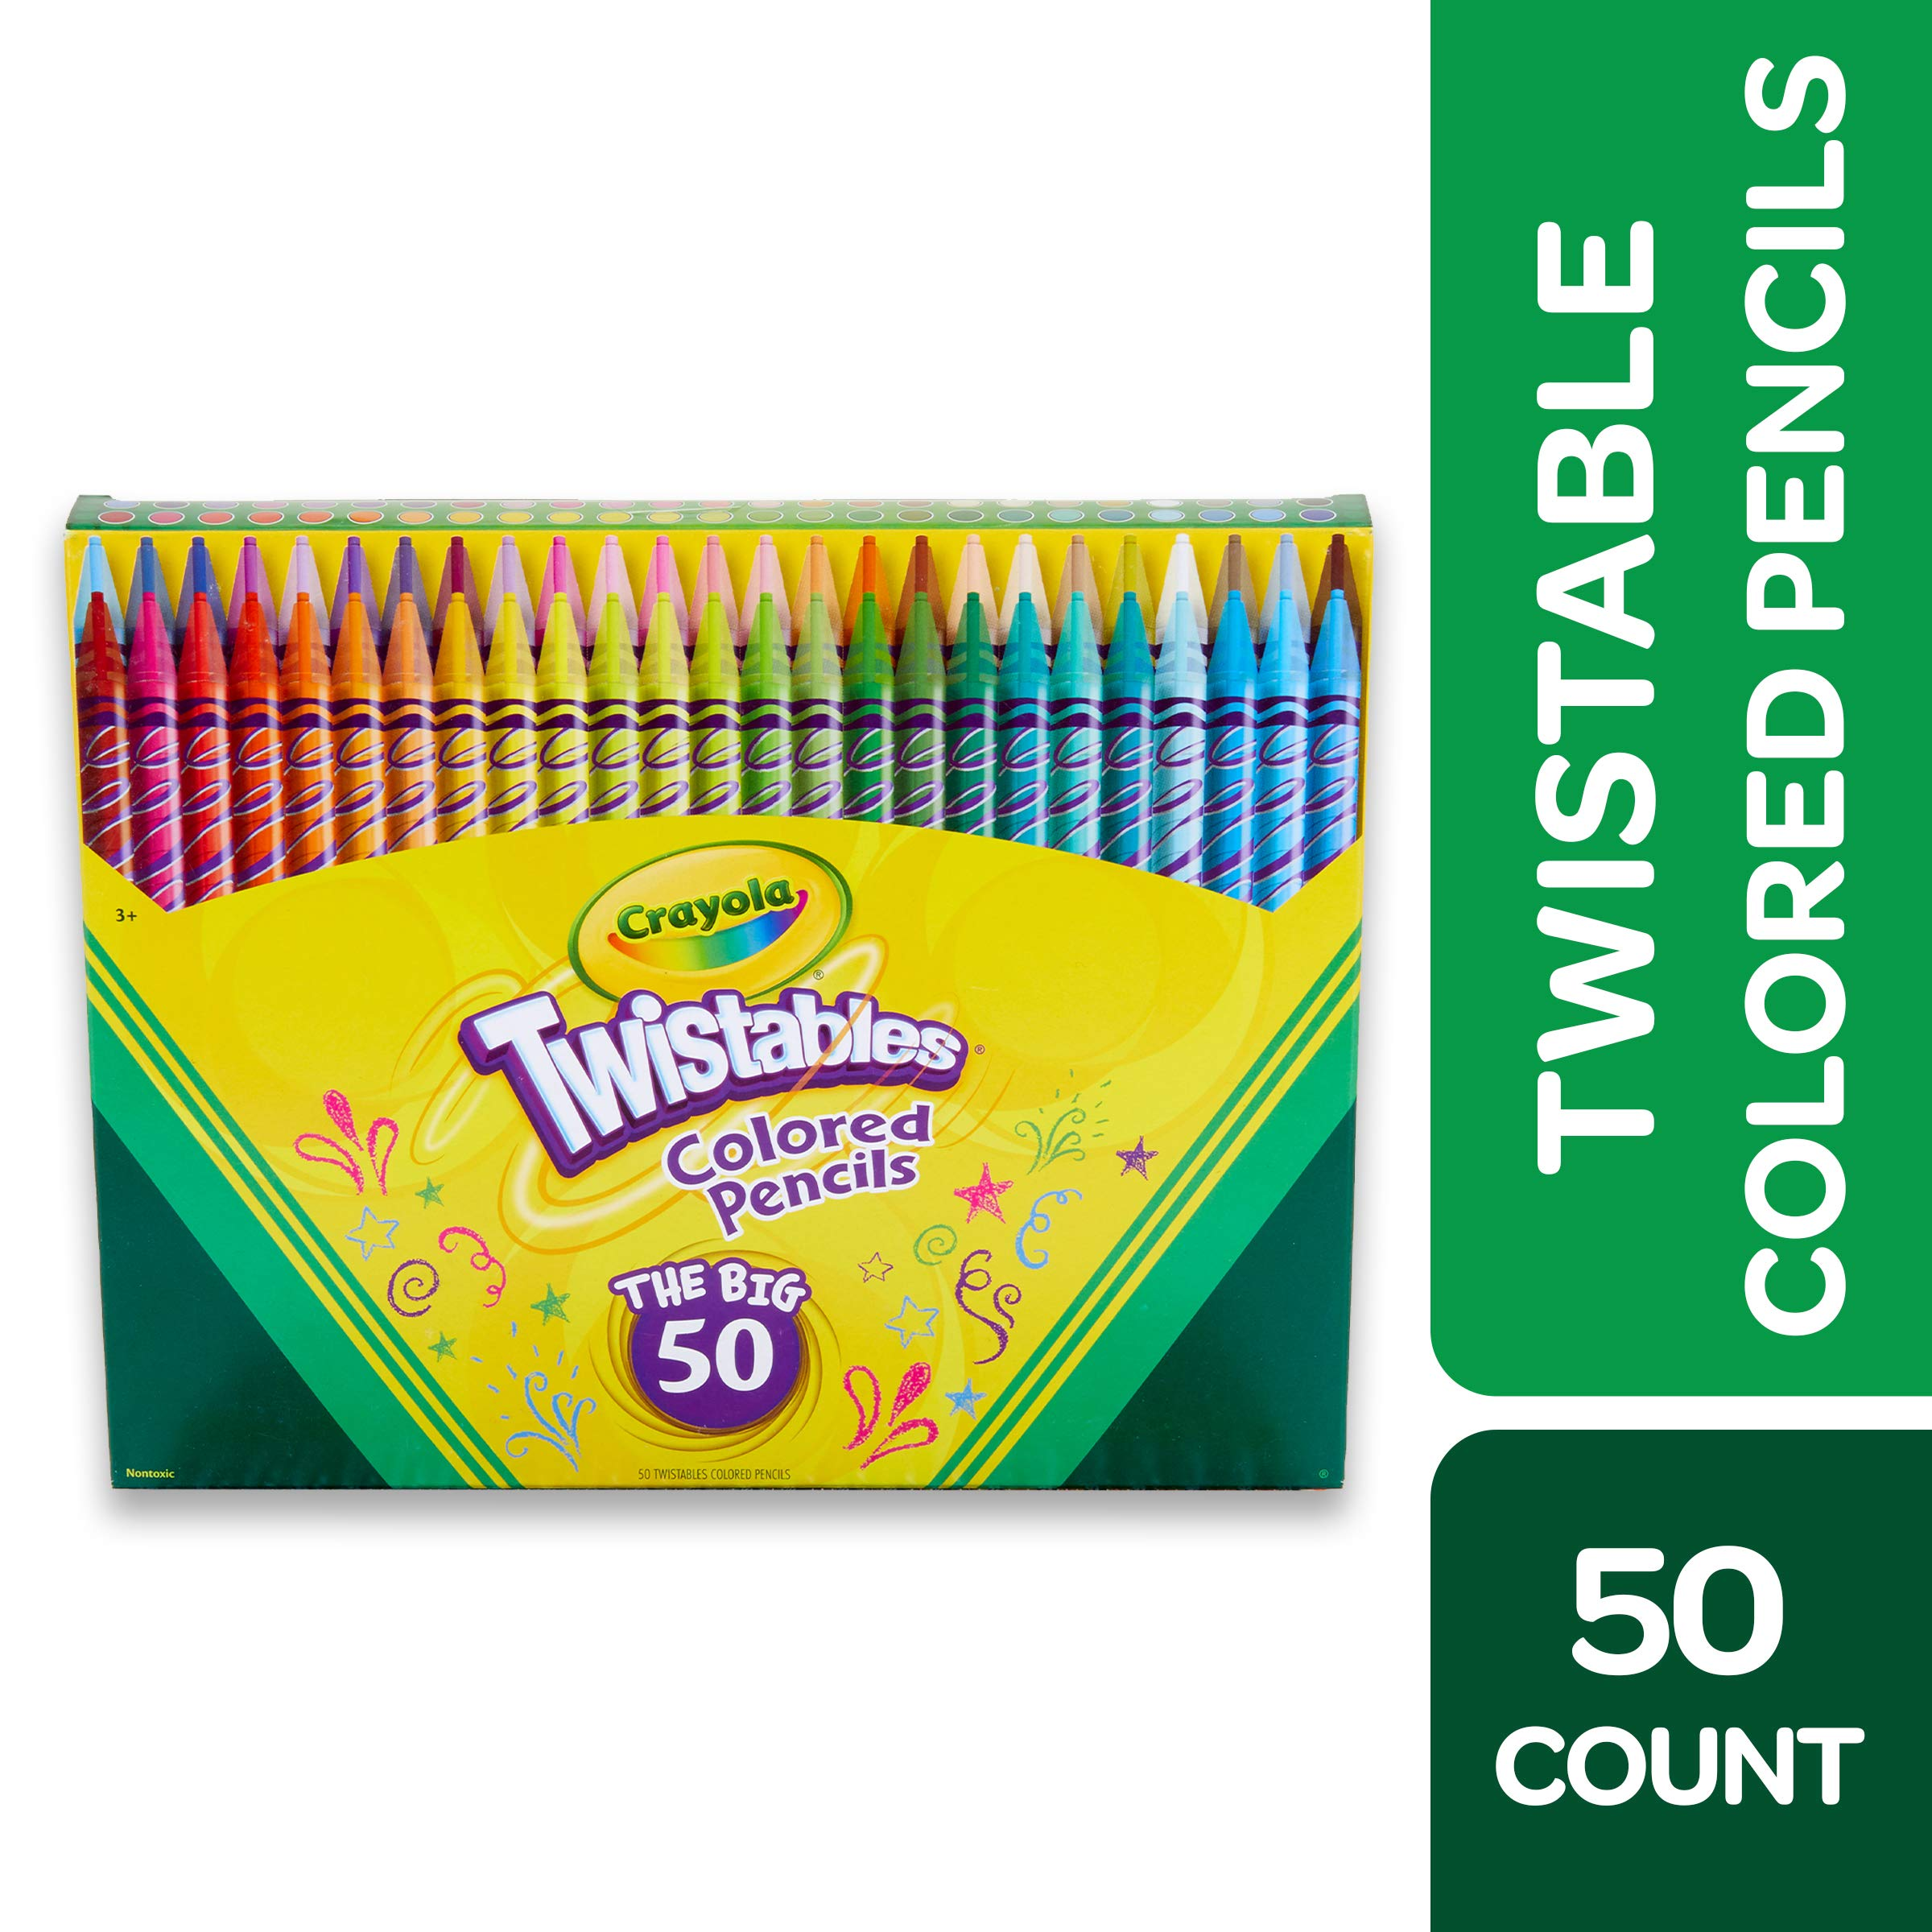 Crayola Twistables Colored Pencils Coloring Set, Kids Indoor Activities At Home, Gift Age 3+ - 50 Count